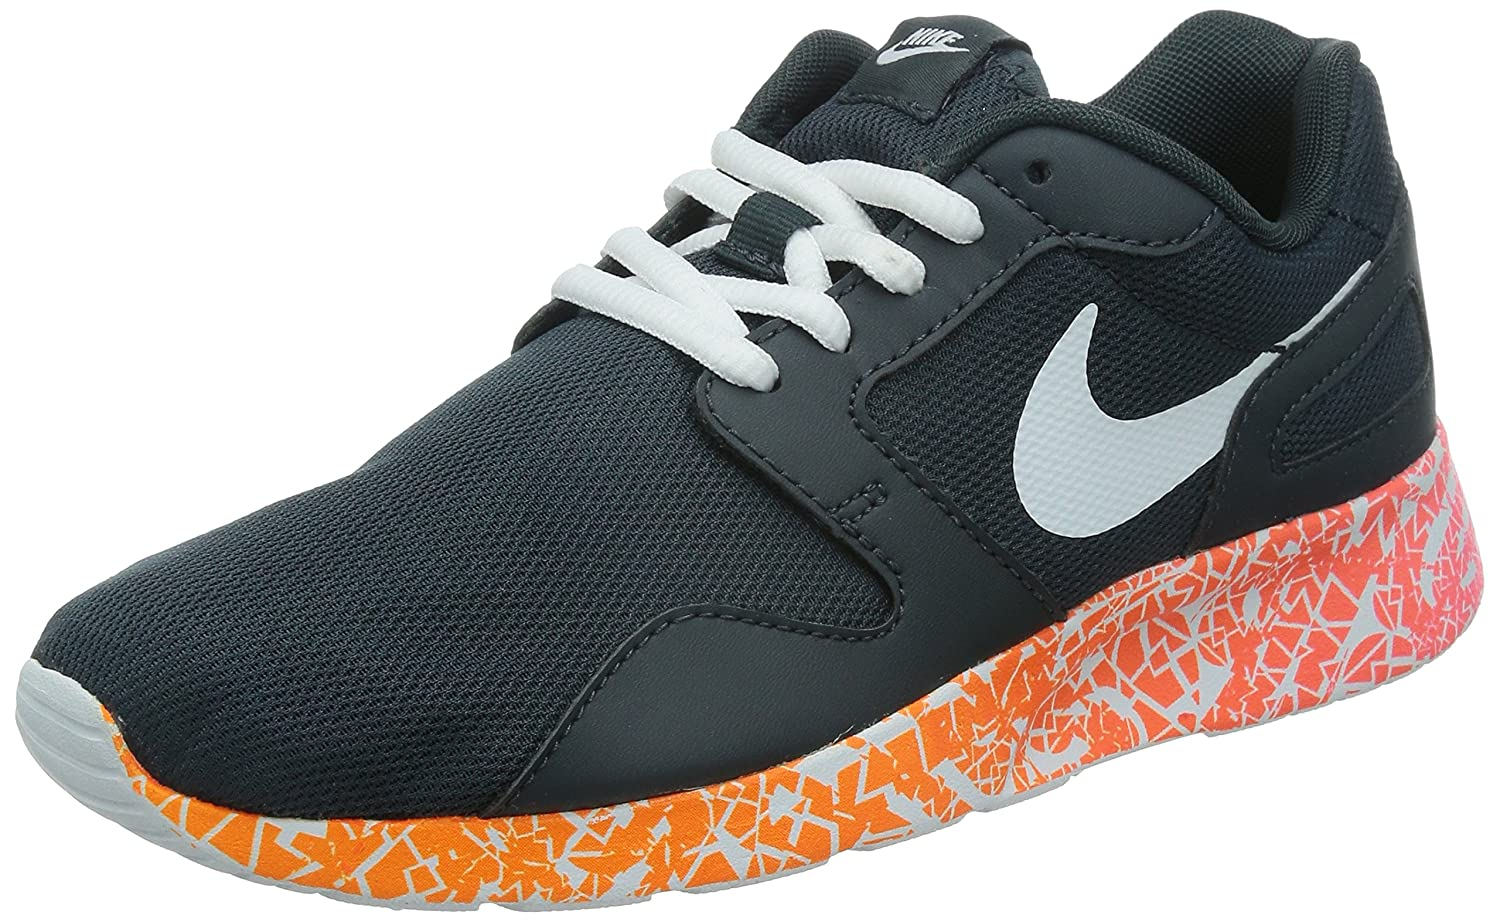 uk availability a5806 2f4e6 Nike Women s Kaishi Print Running Shoes (9.5, Classic Charcoal Pink  Pow Total Orange White)  Amazon.co.uk  Sports   Outdoors